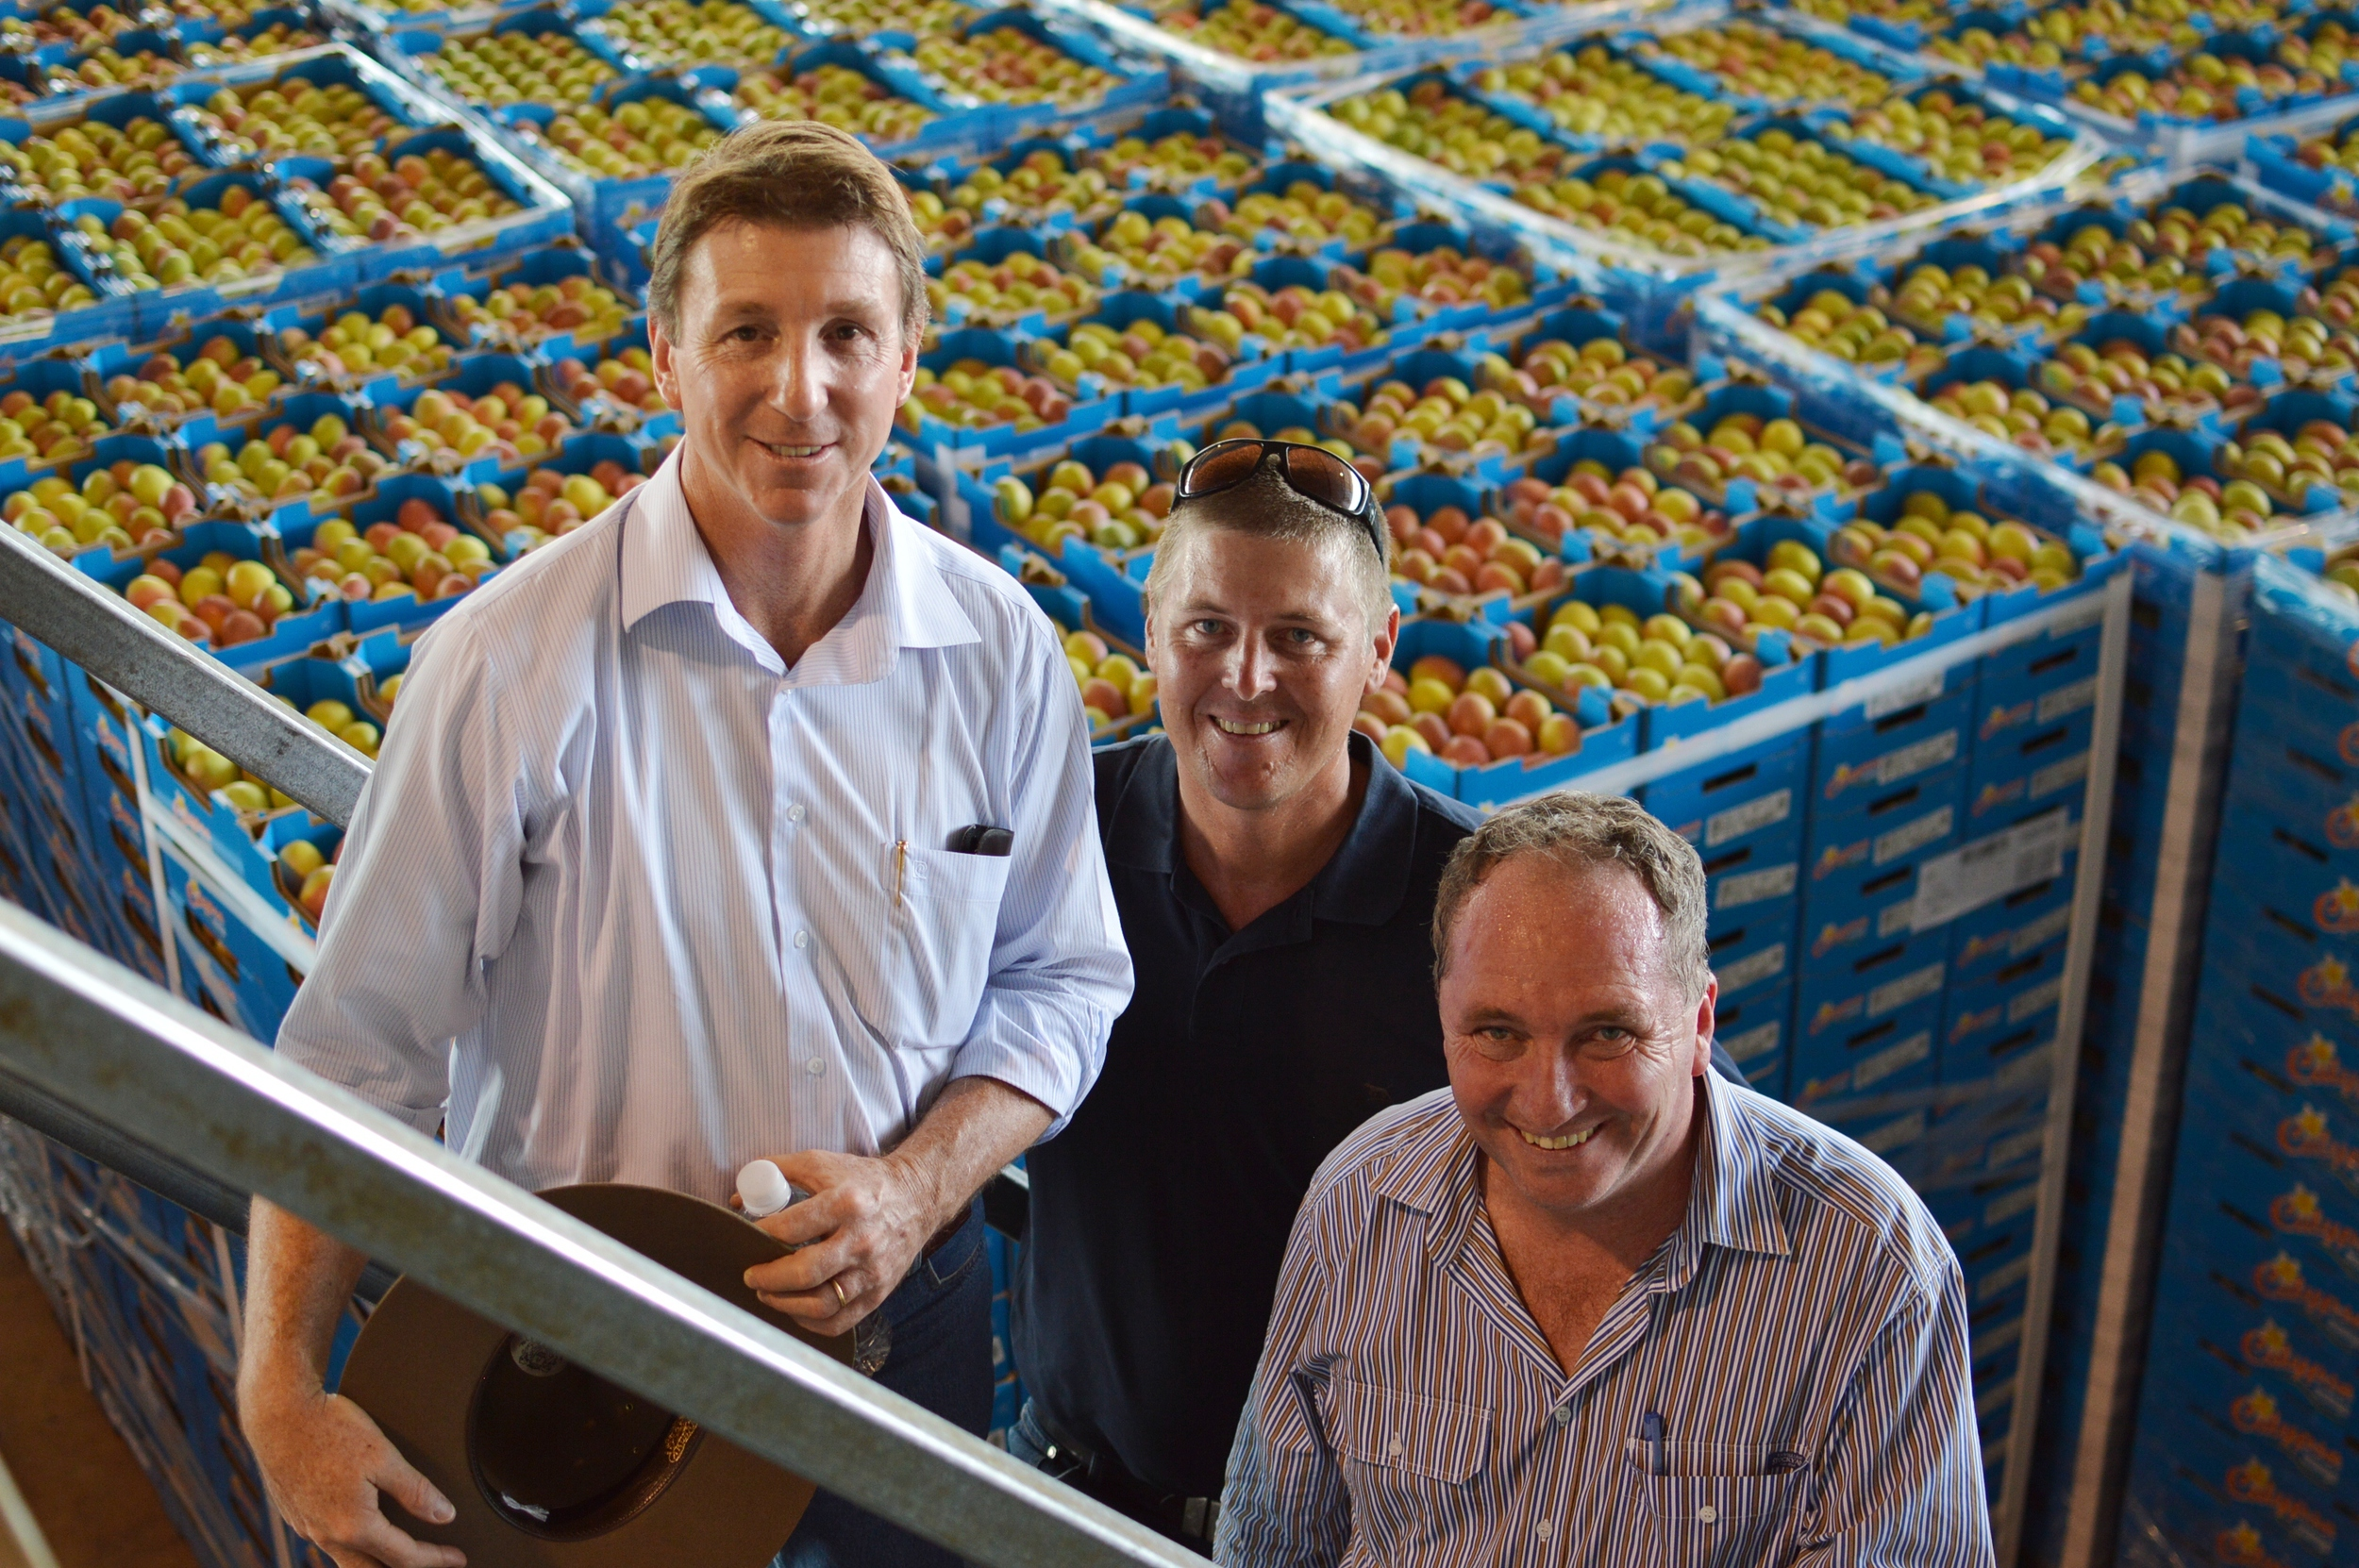 From left: Northern Territory Minister for Primary Industry and Fisheries, the Hon. Willem Westra van Holthe,   the Federal Minister for Agriculture, the Hon. Barnaby Joyce, and AMIA Chariman Gavin Scurr.